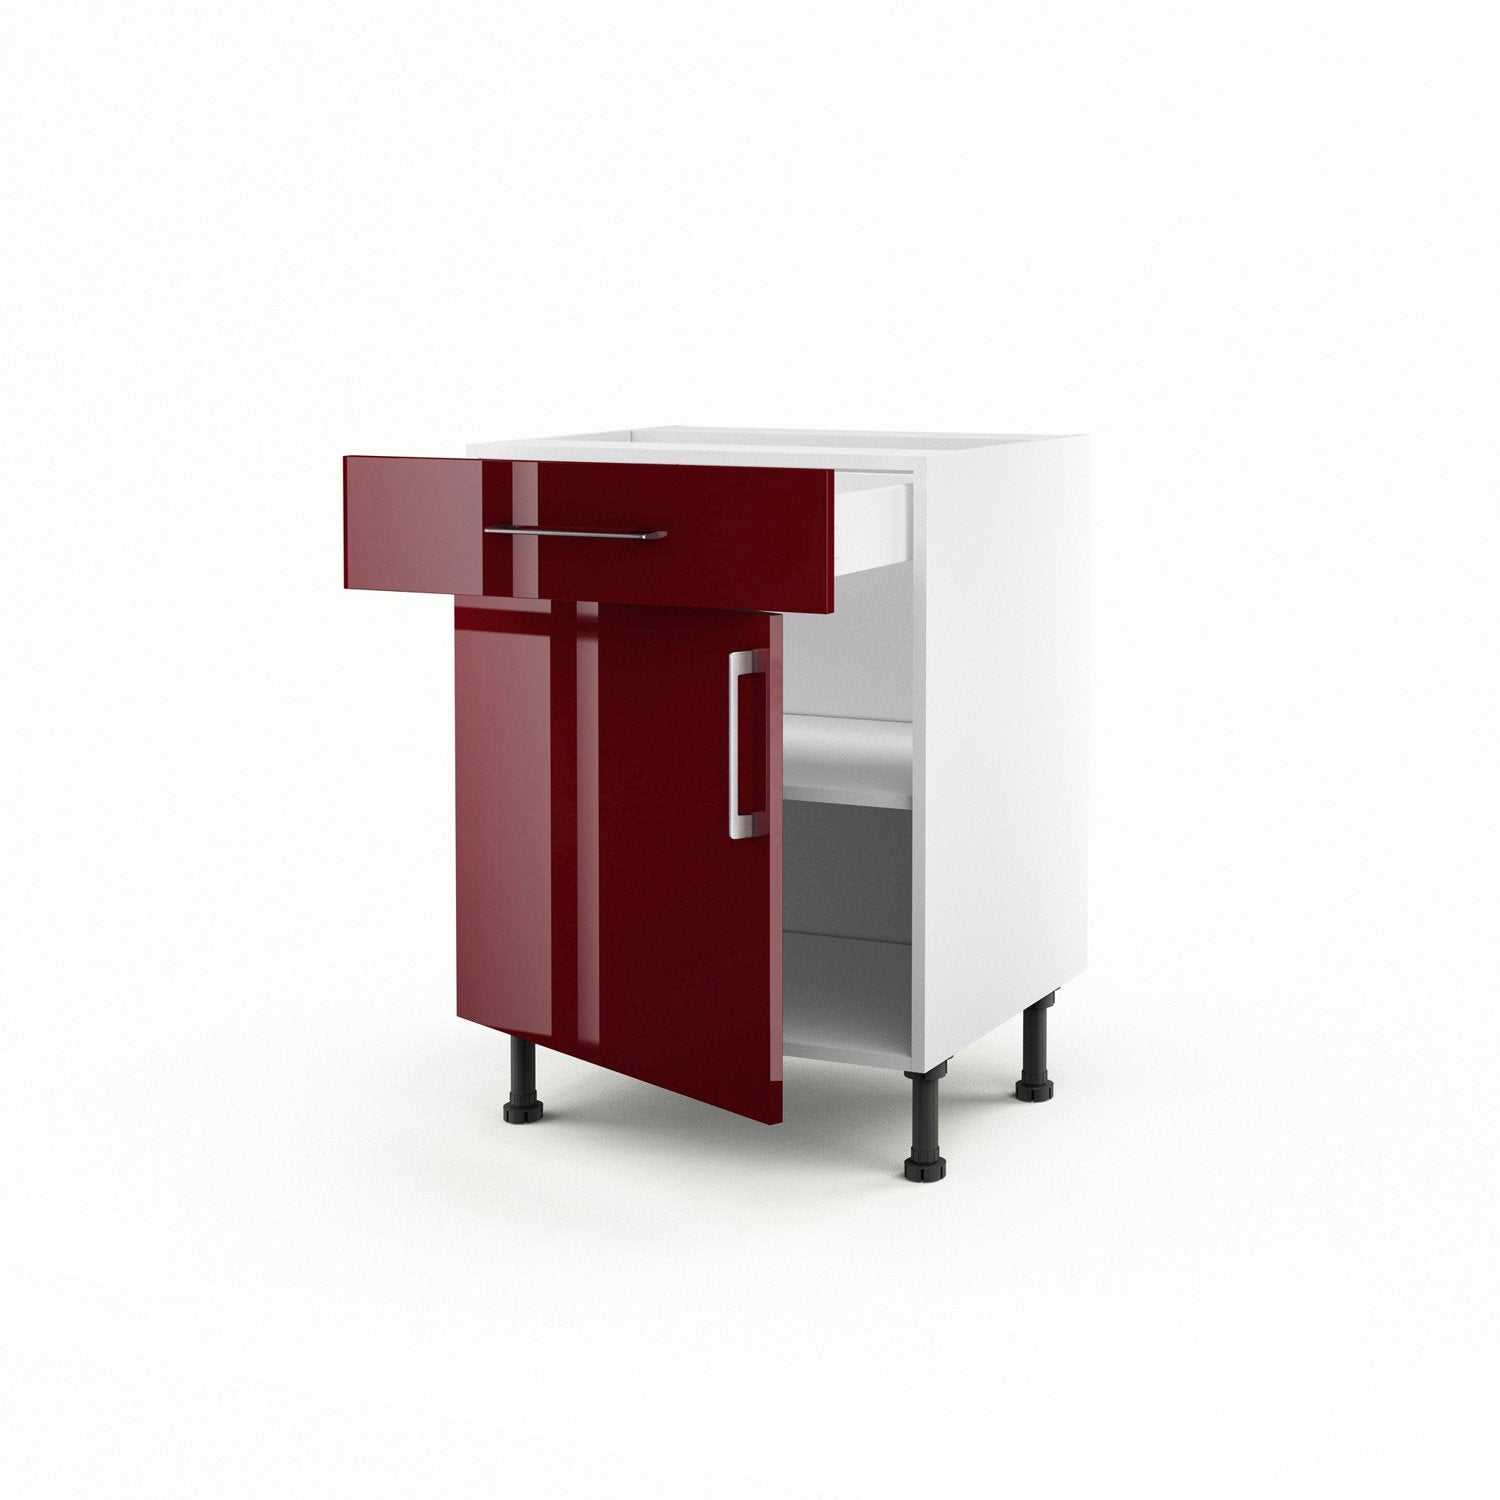 Meuble de cuisine bas rouge 1 porte 1 tiroir griotte h for Portes elements cuisine leroy merlin